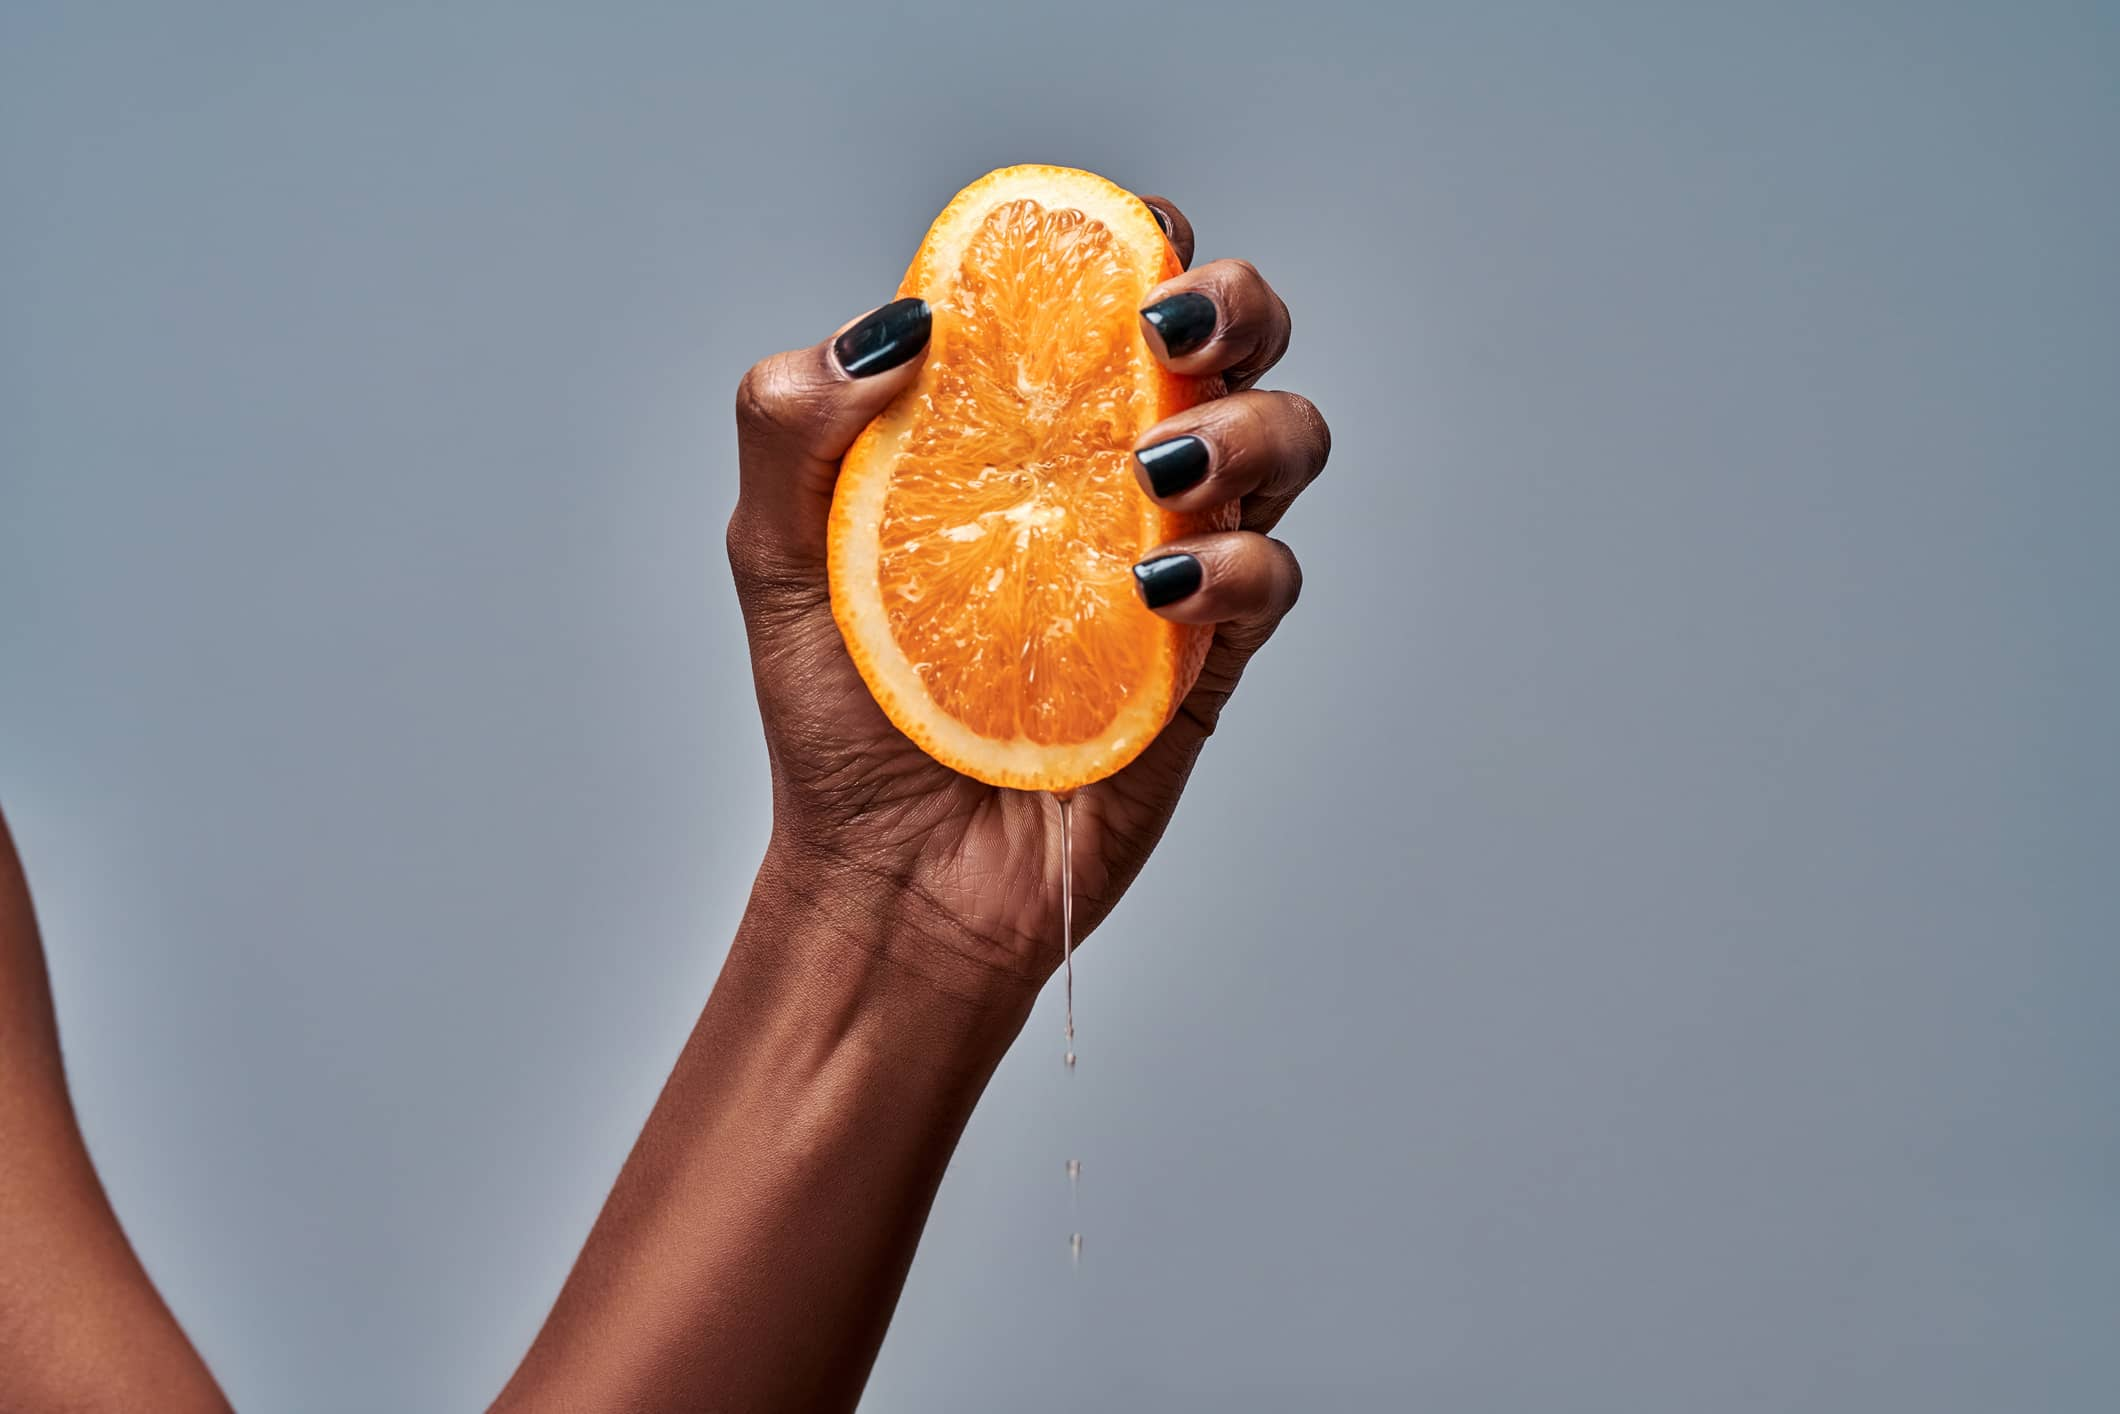 Vitamin C foods: what to eat